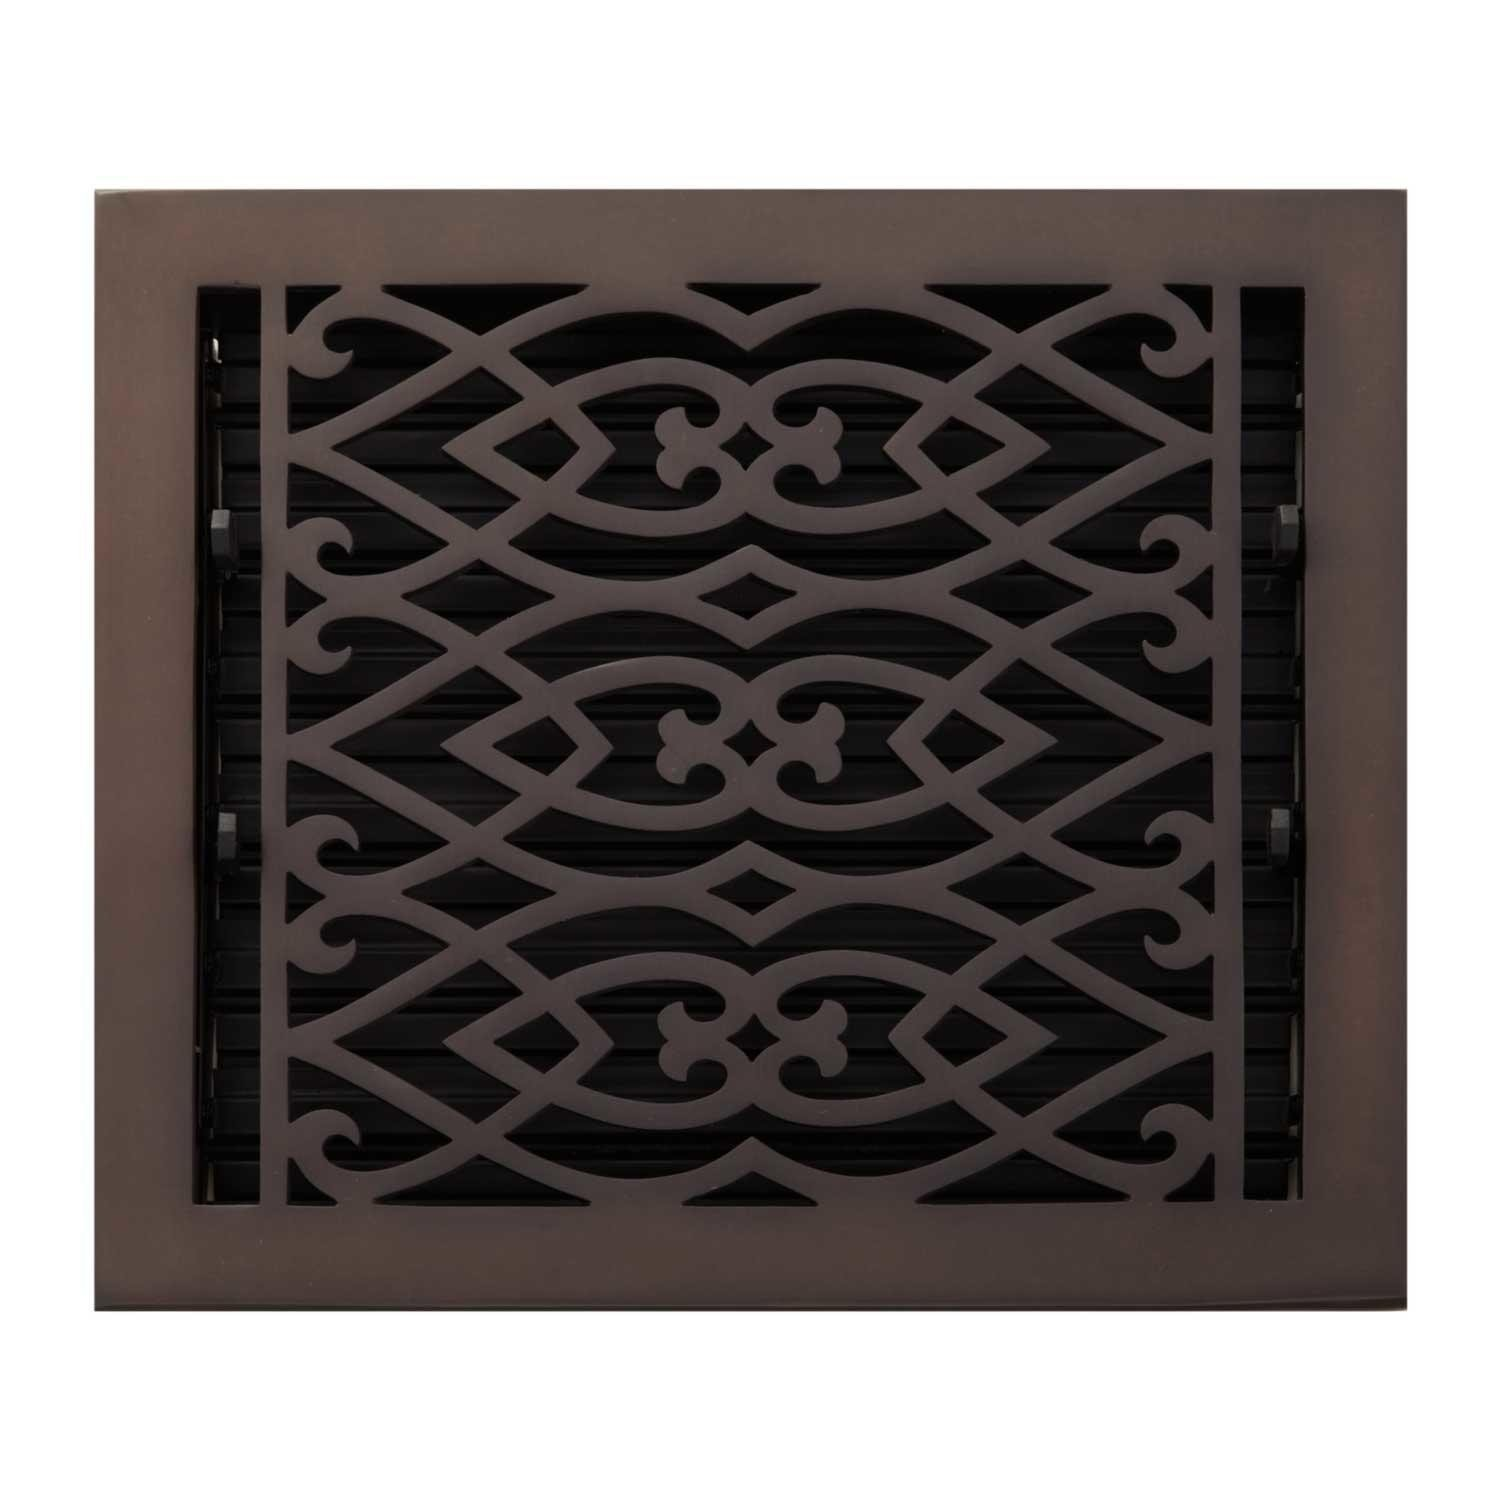 SH Naiture 8'' x 8'' Solid Brass Louvered Oversized Floor Register with Damper or Lever Victorian Style, Oil Rubbed Bronze Finish